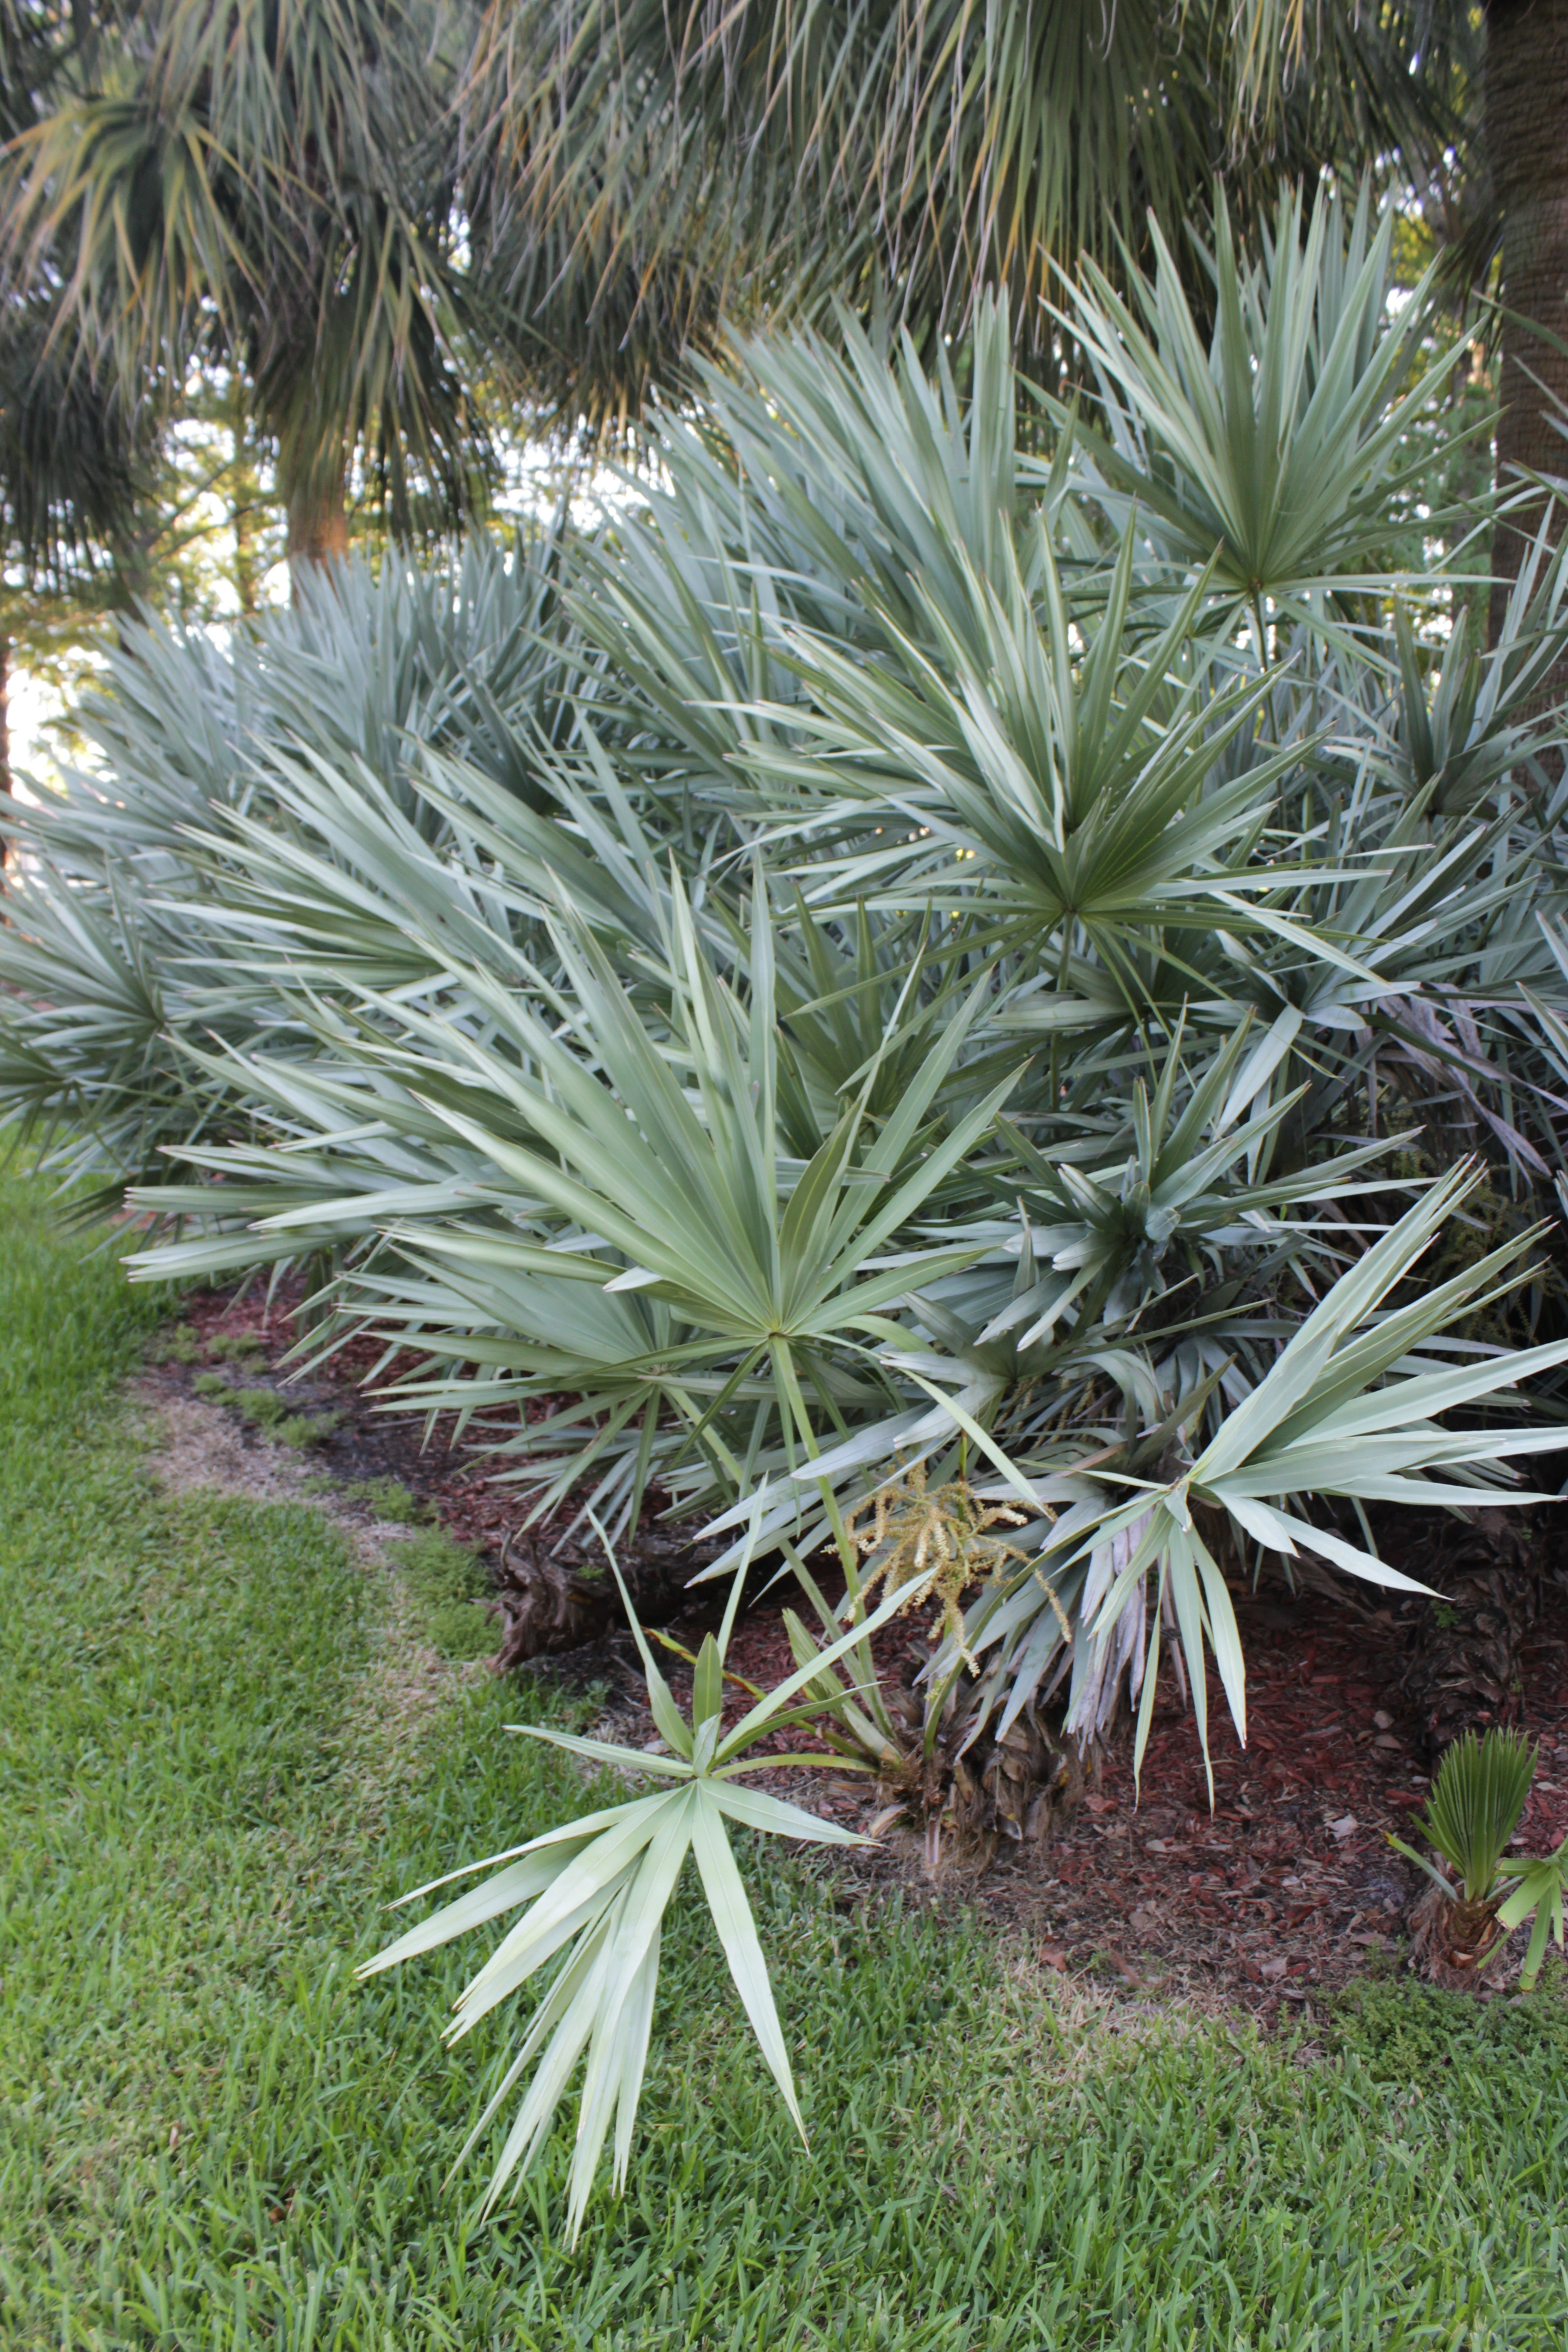 Mounds and mounds of blue-gray, fan-shaped Saw Palmetto abound with their flower panicles arching here and there.